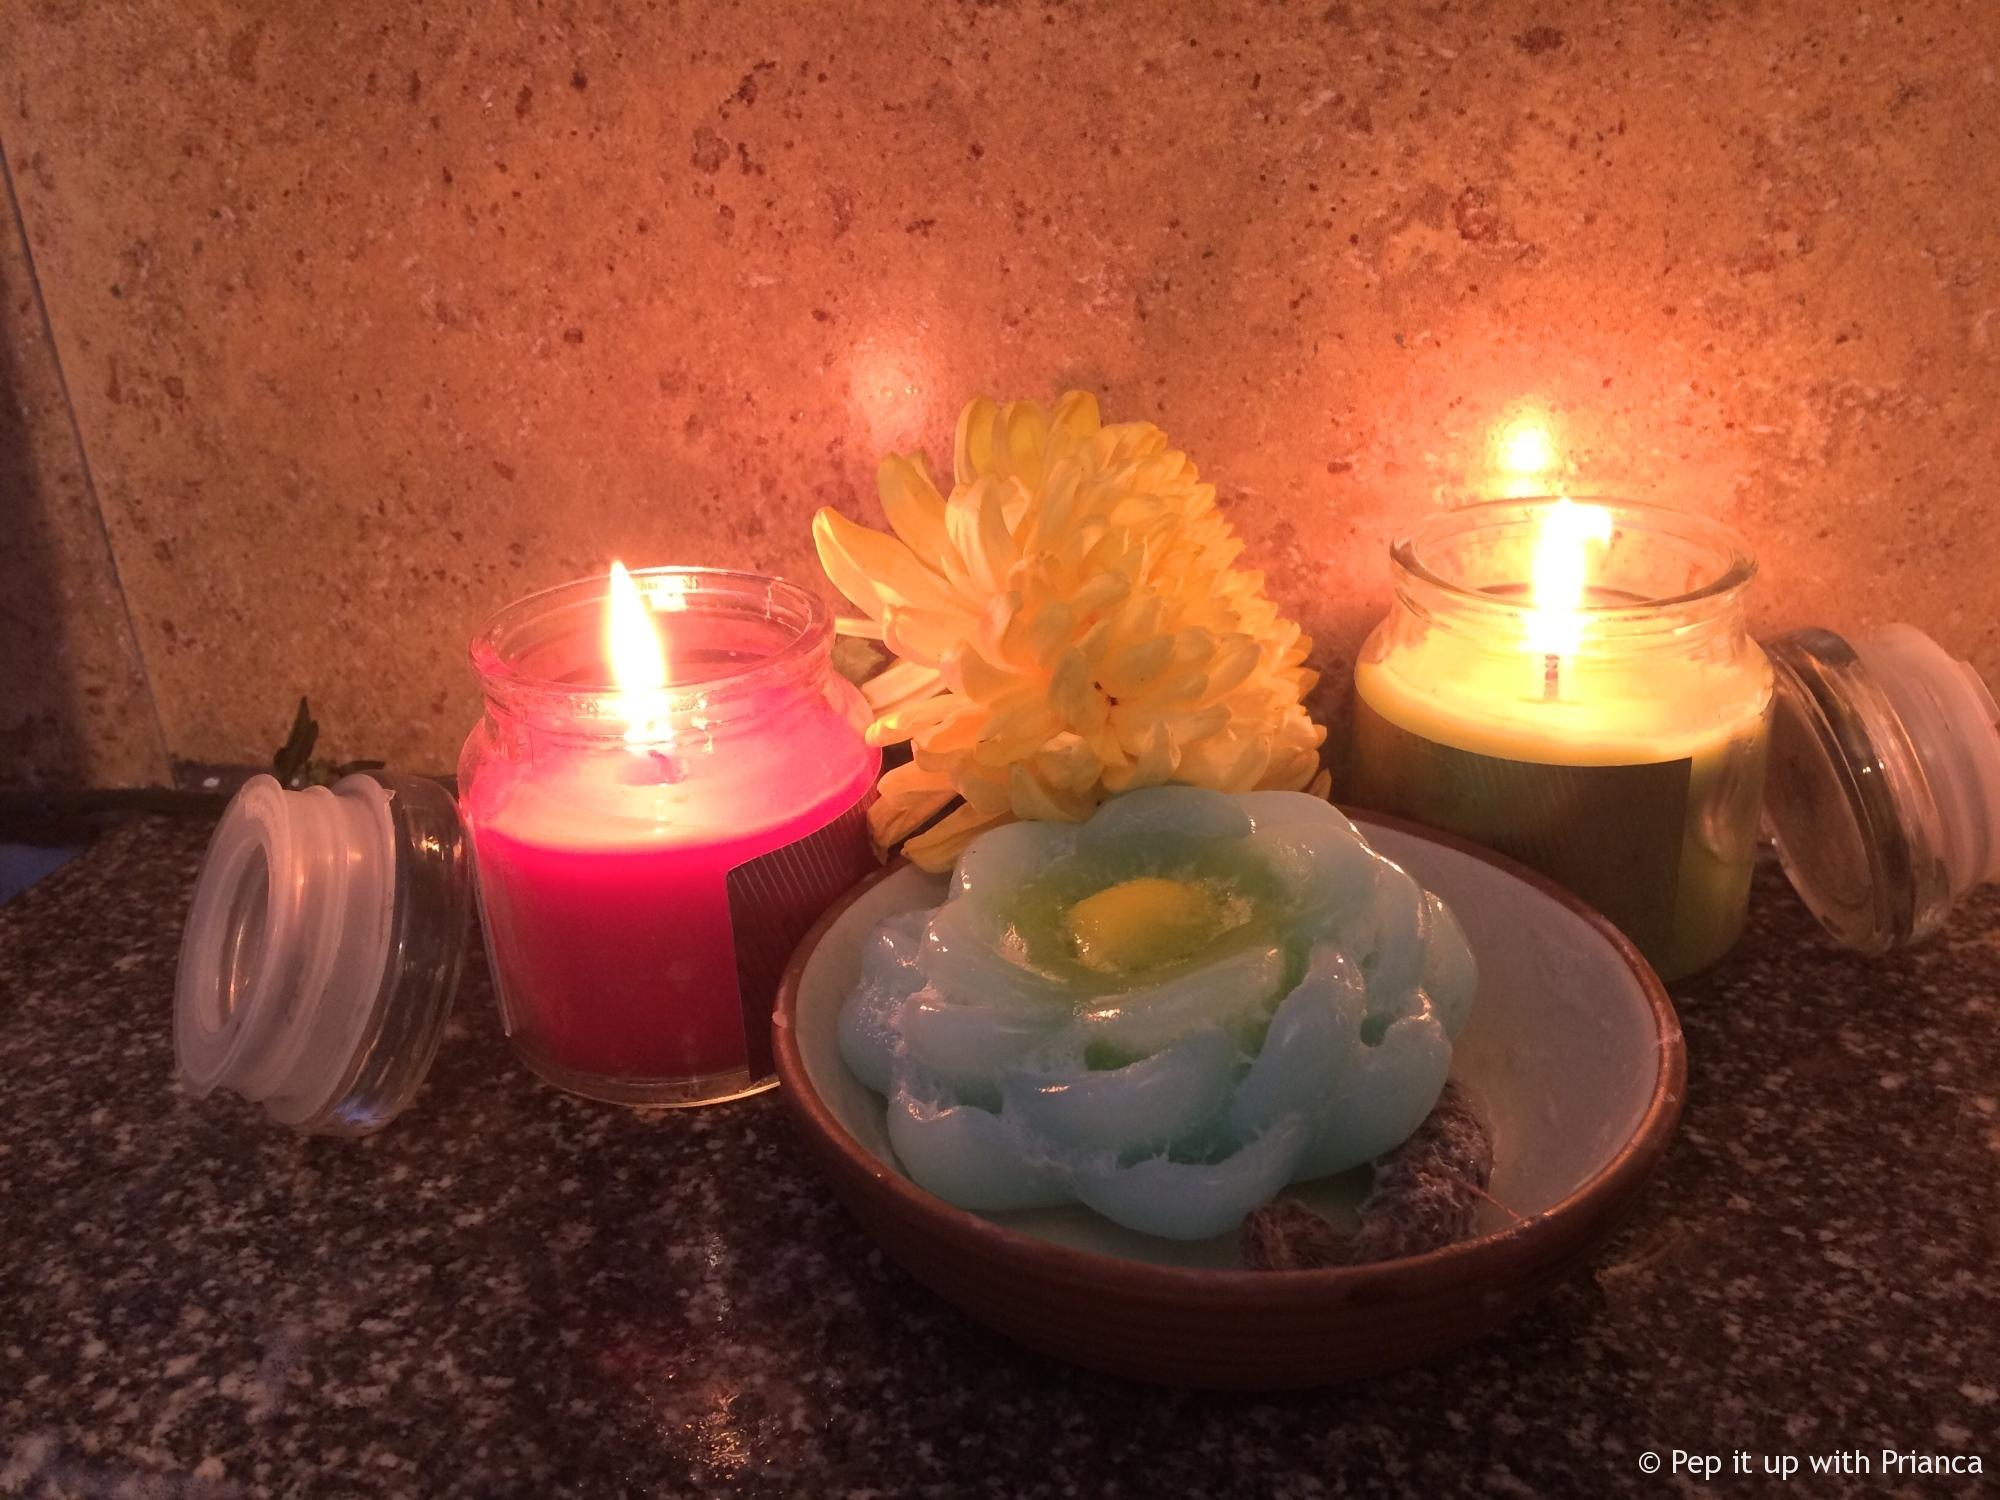 Aromatherapy DIY ideas for home image 4 - 5 DIY Aromatherapy Ideas to Make your Home Smell Heavenly